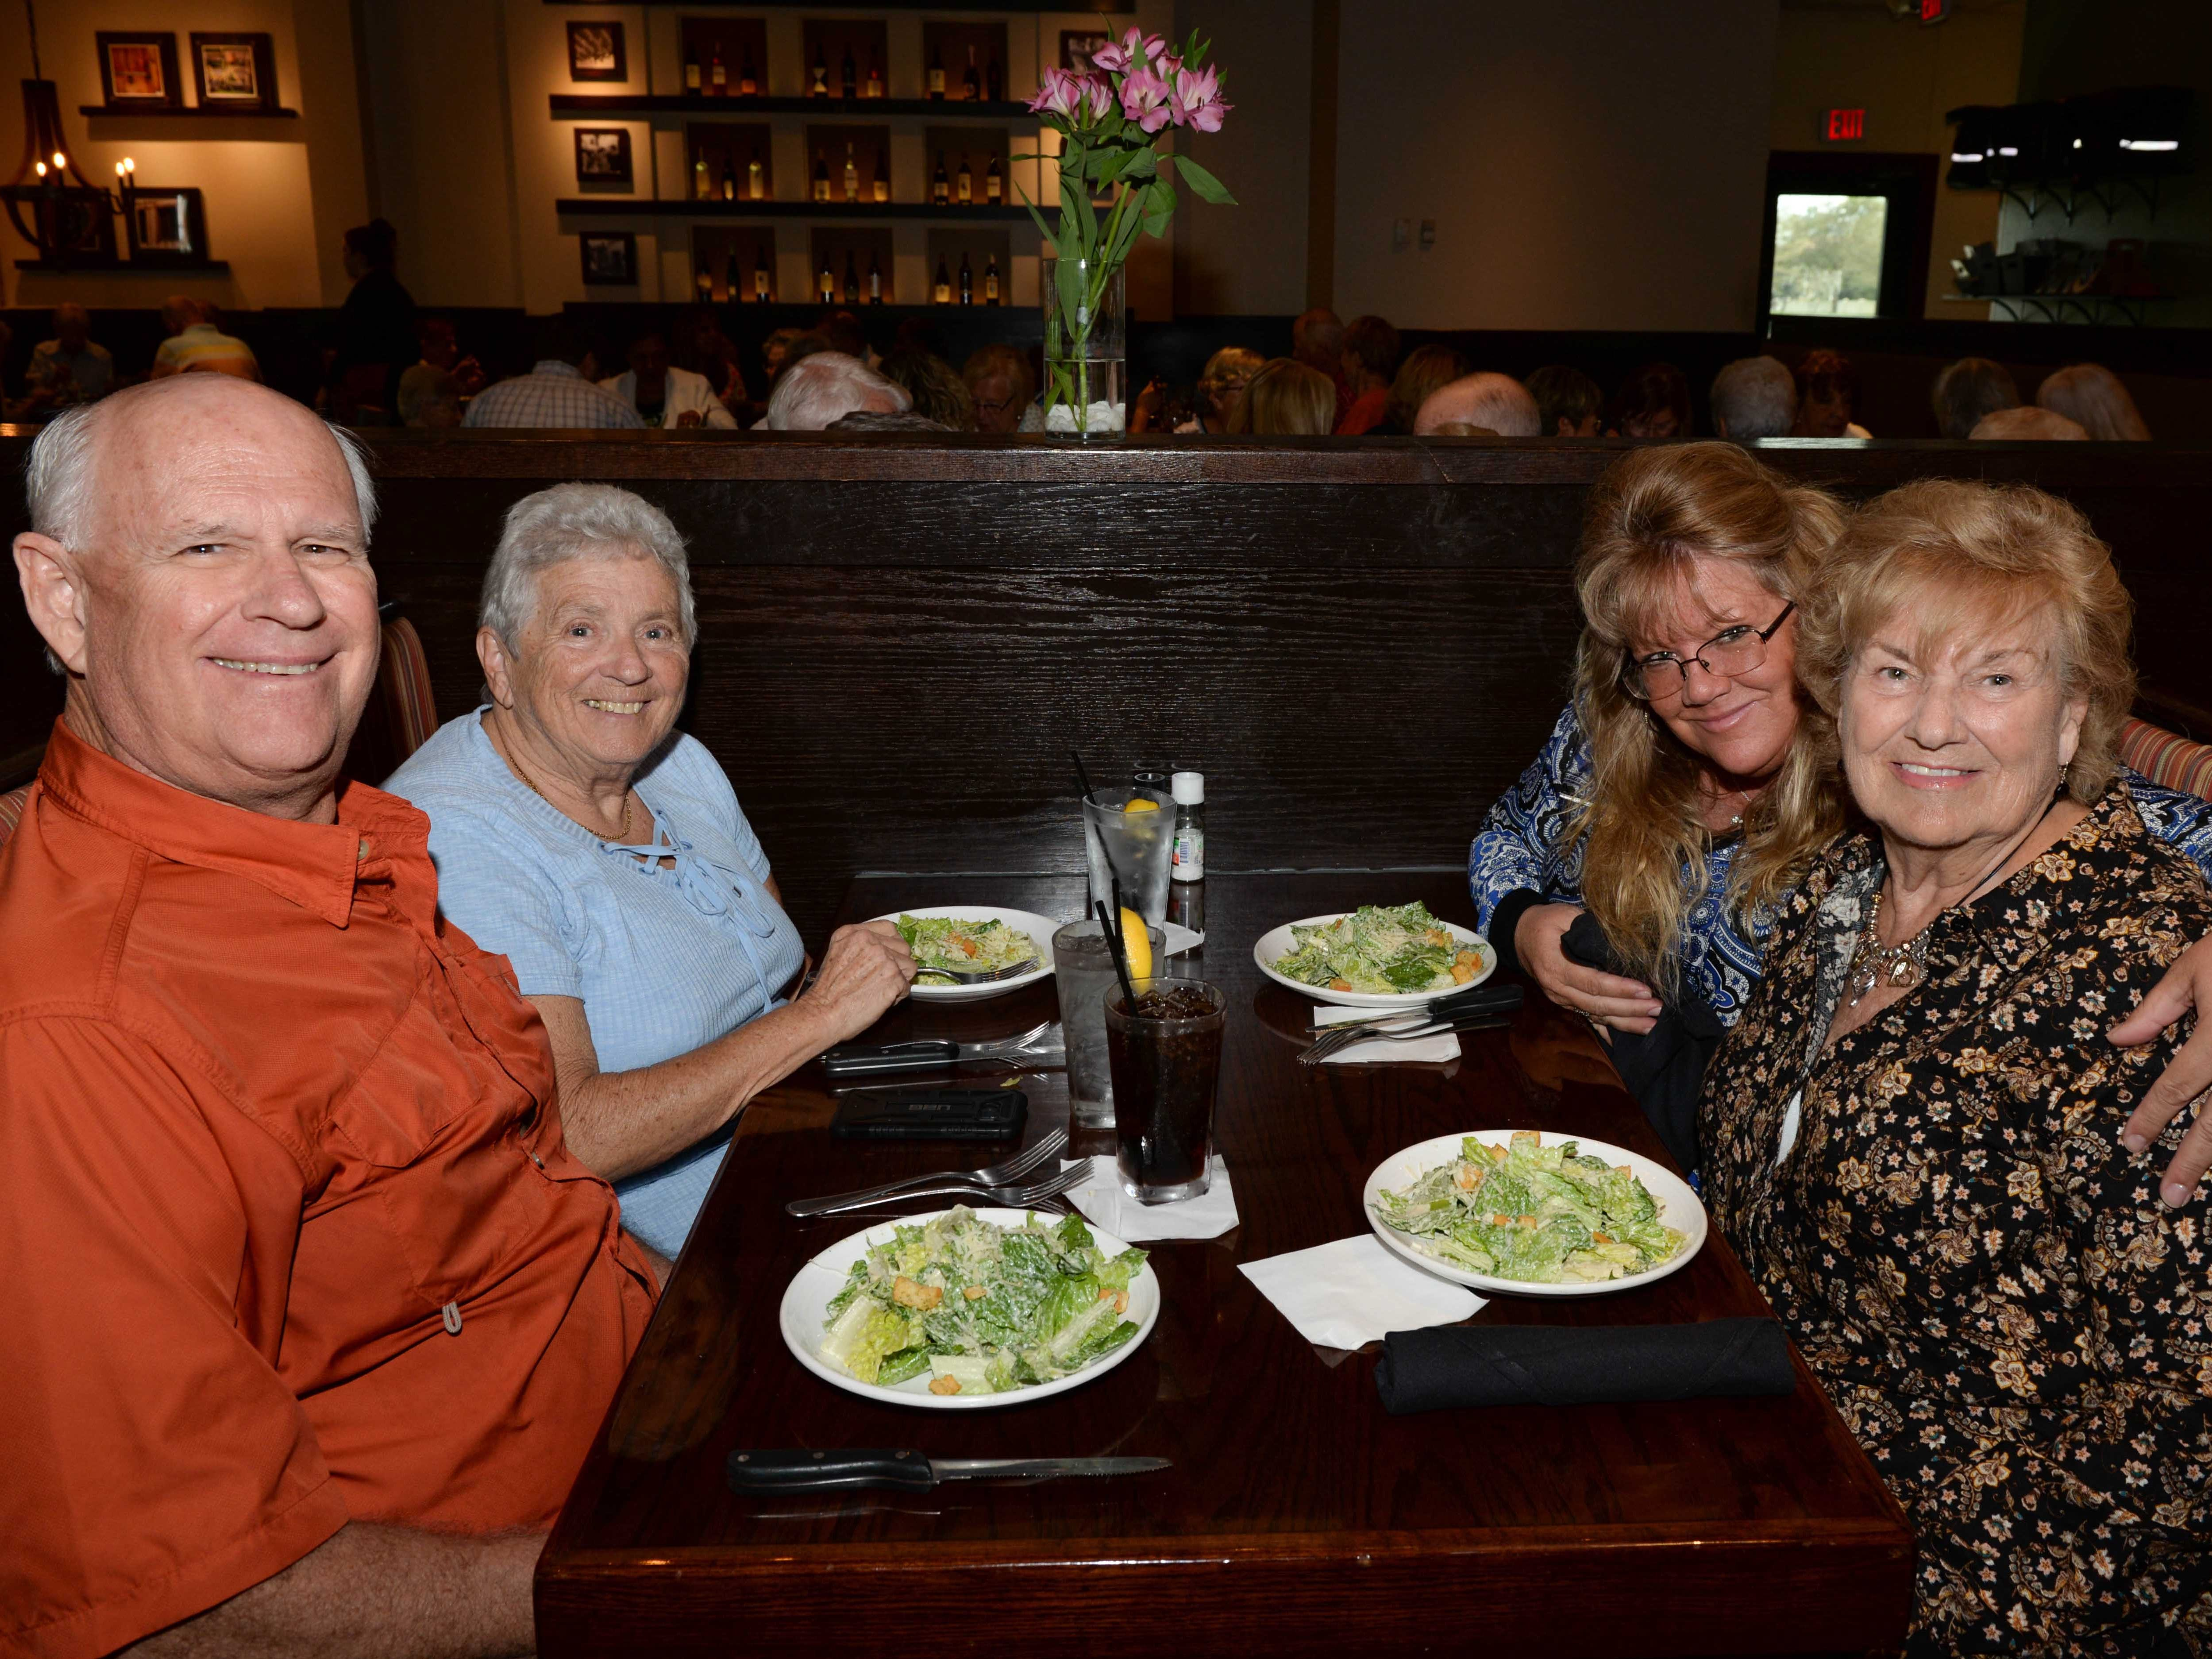 Alan and Brenda Wilson, left, Sue Angarola and Eugenie Weber at Carrabba's Italian Grill in St. Lucie West for the Sarah's Kitchen luncheon.